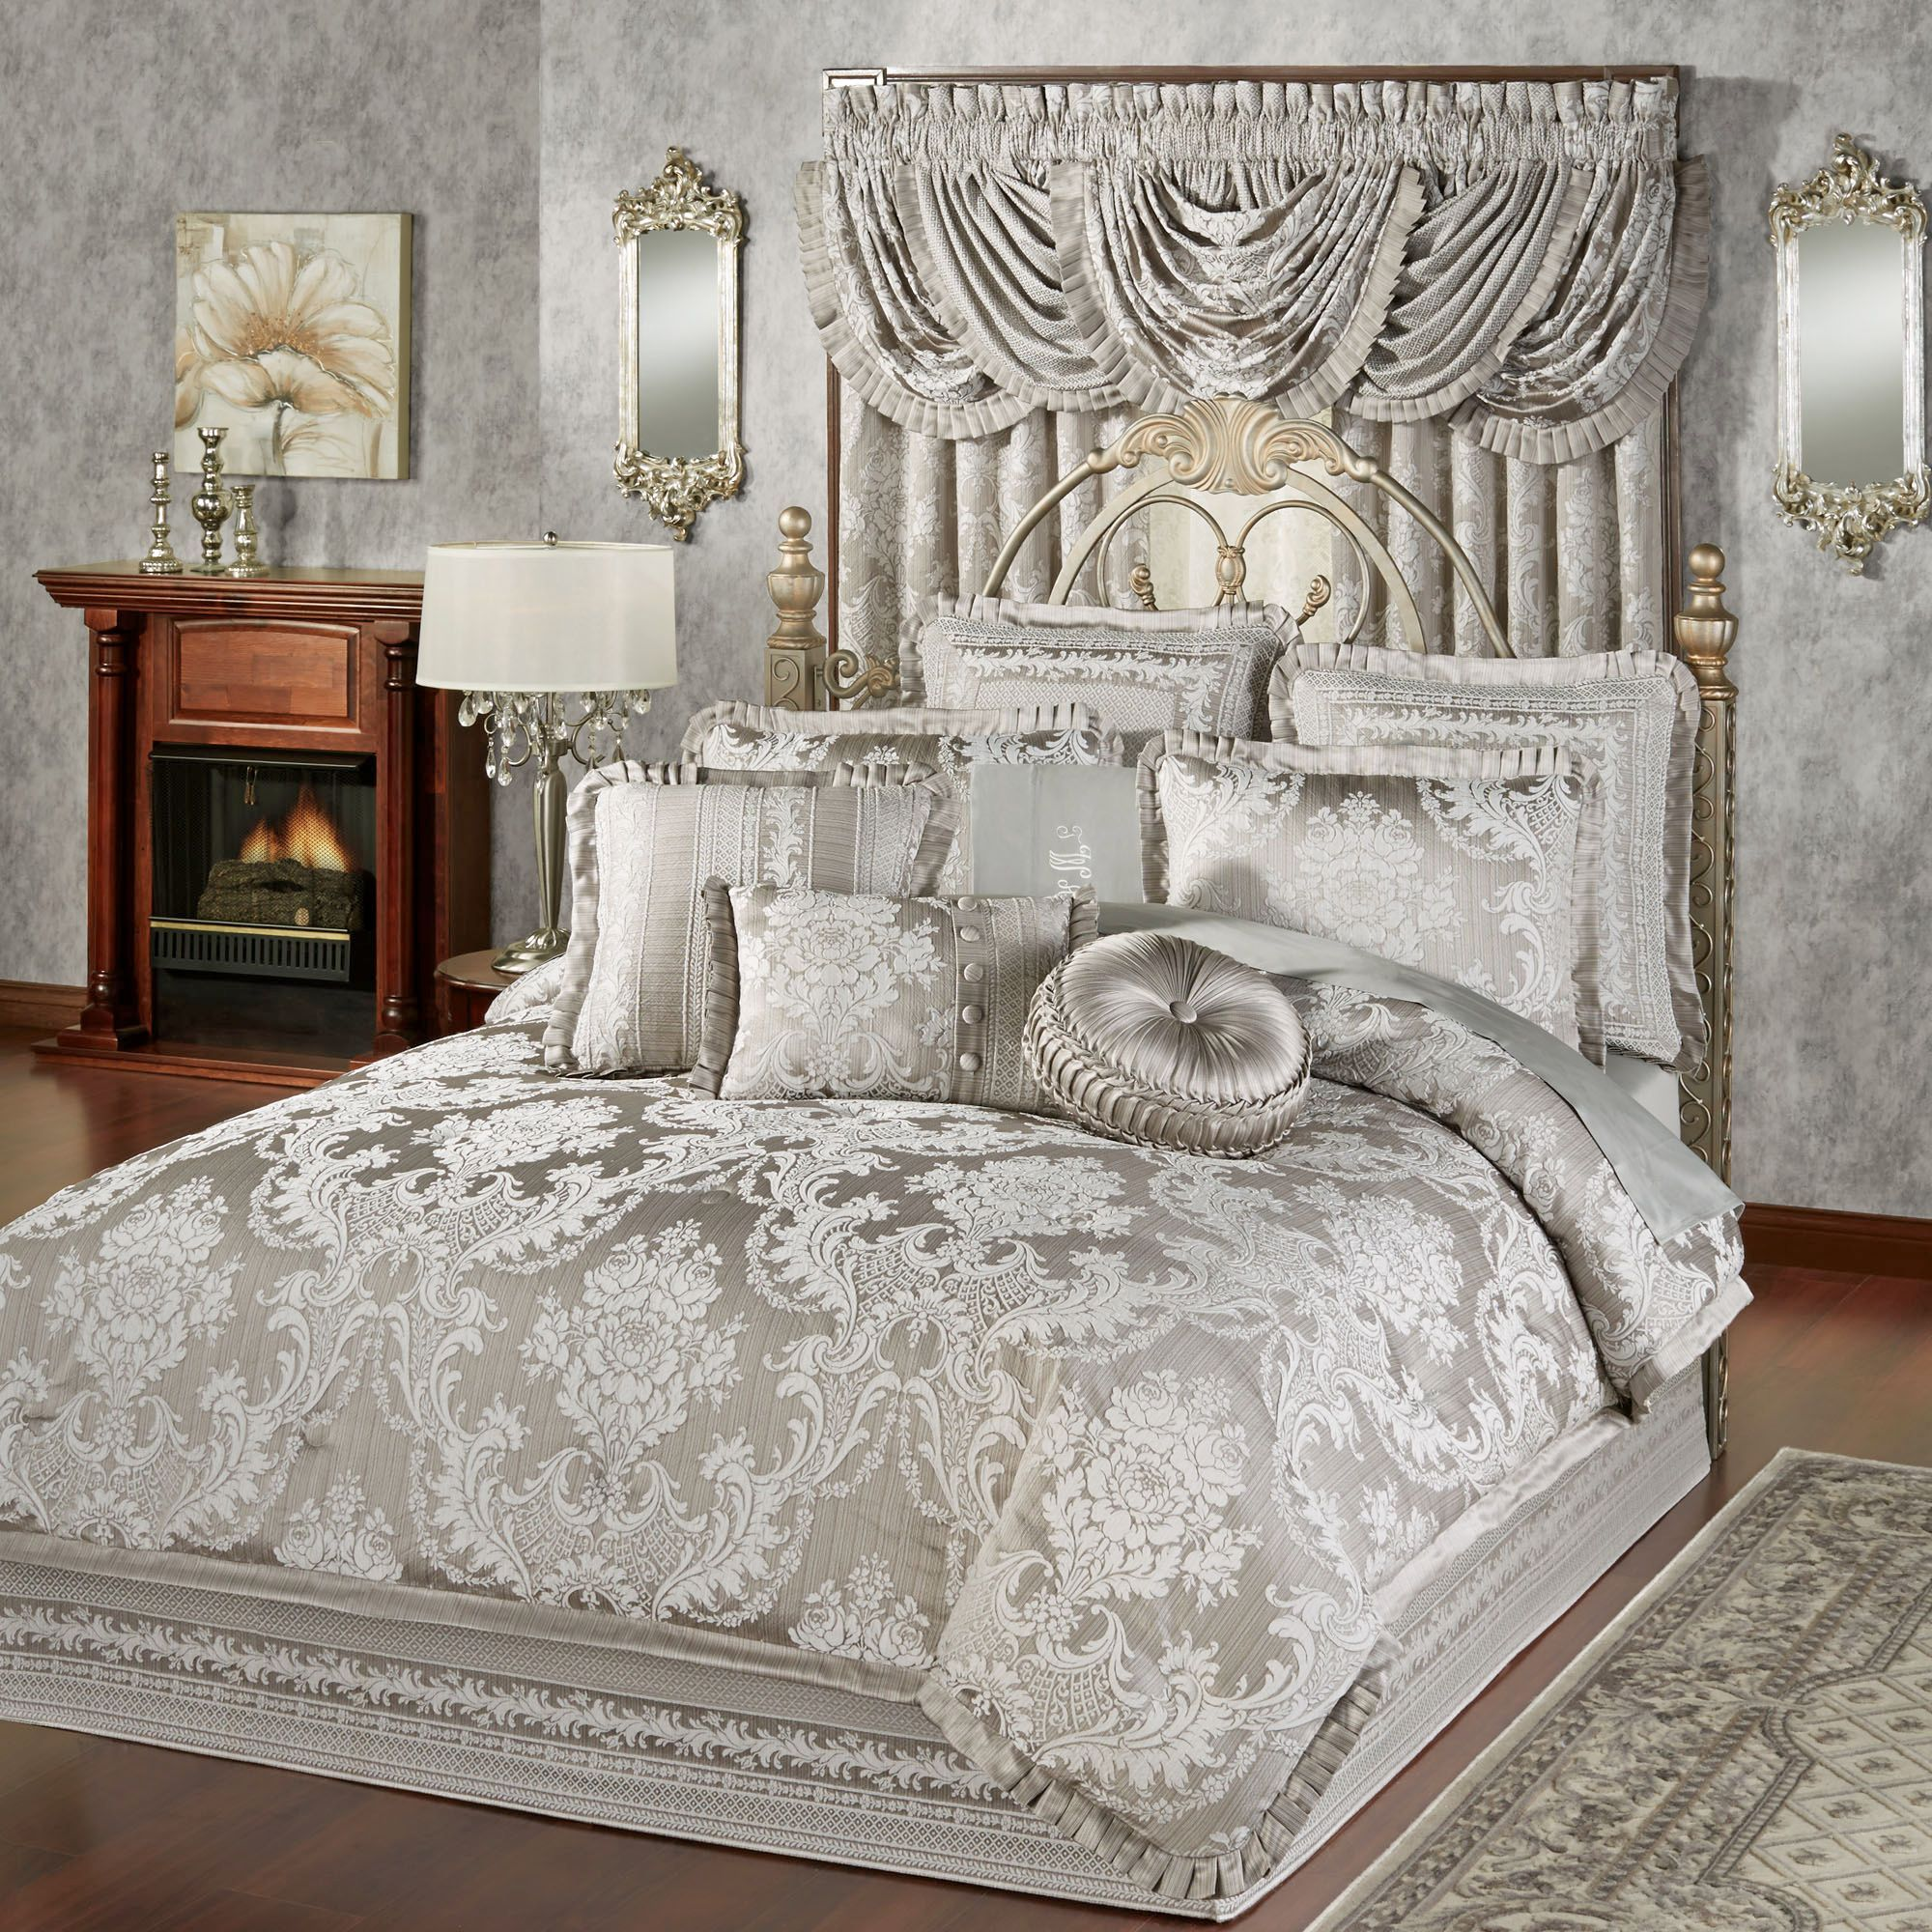 Bellamy silver gray comforter bedding comforter gray for Bedroom ideas silver